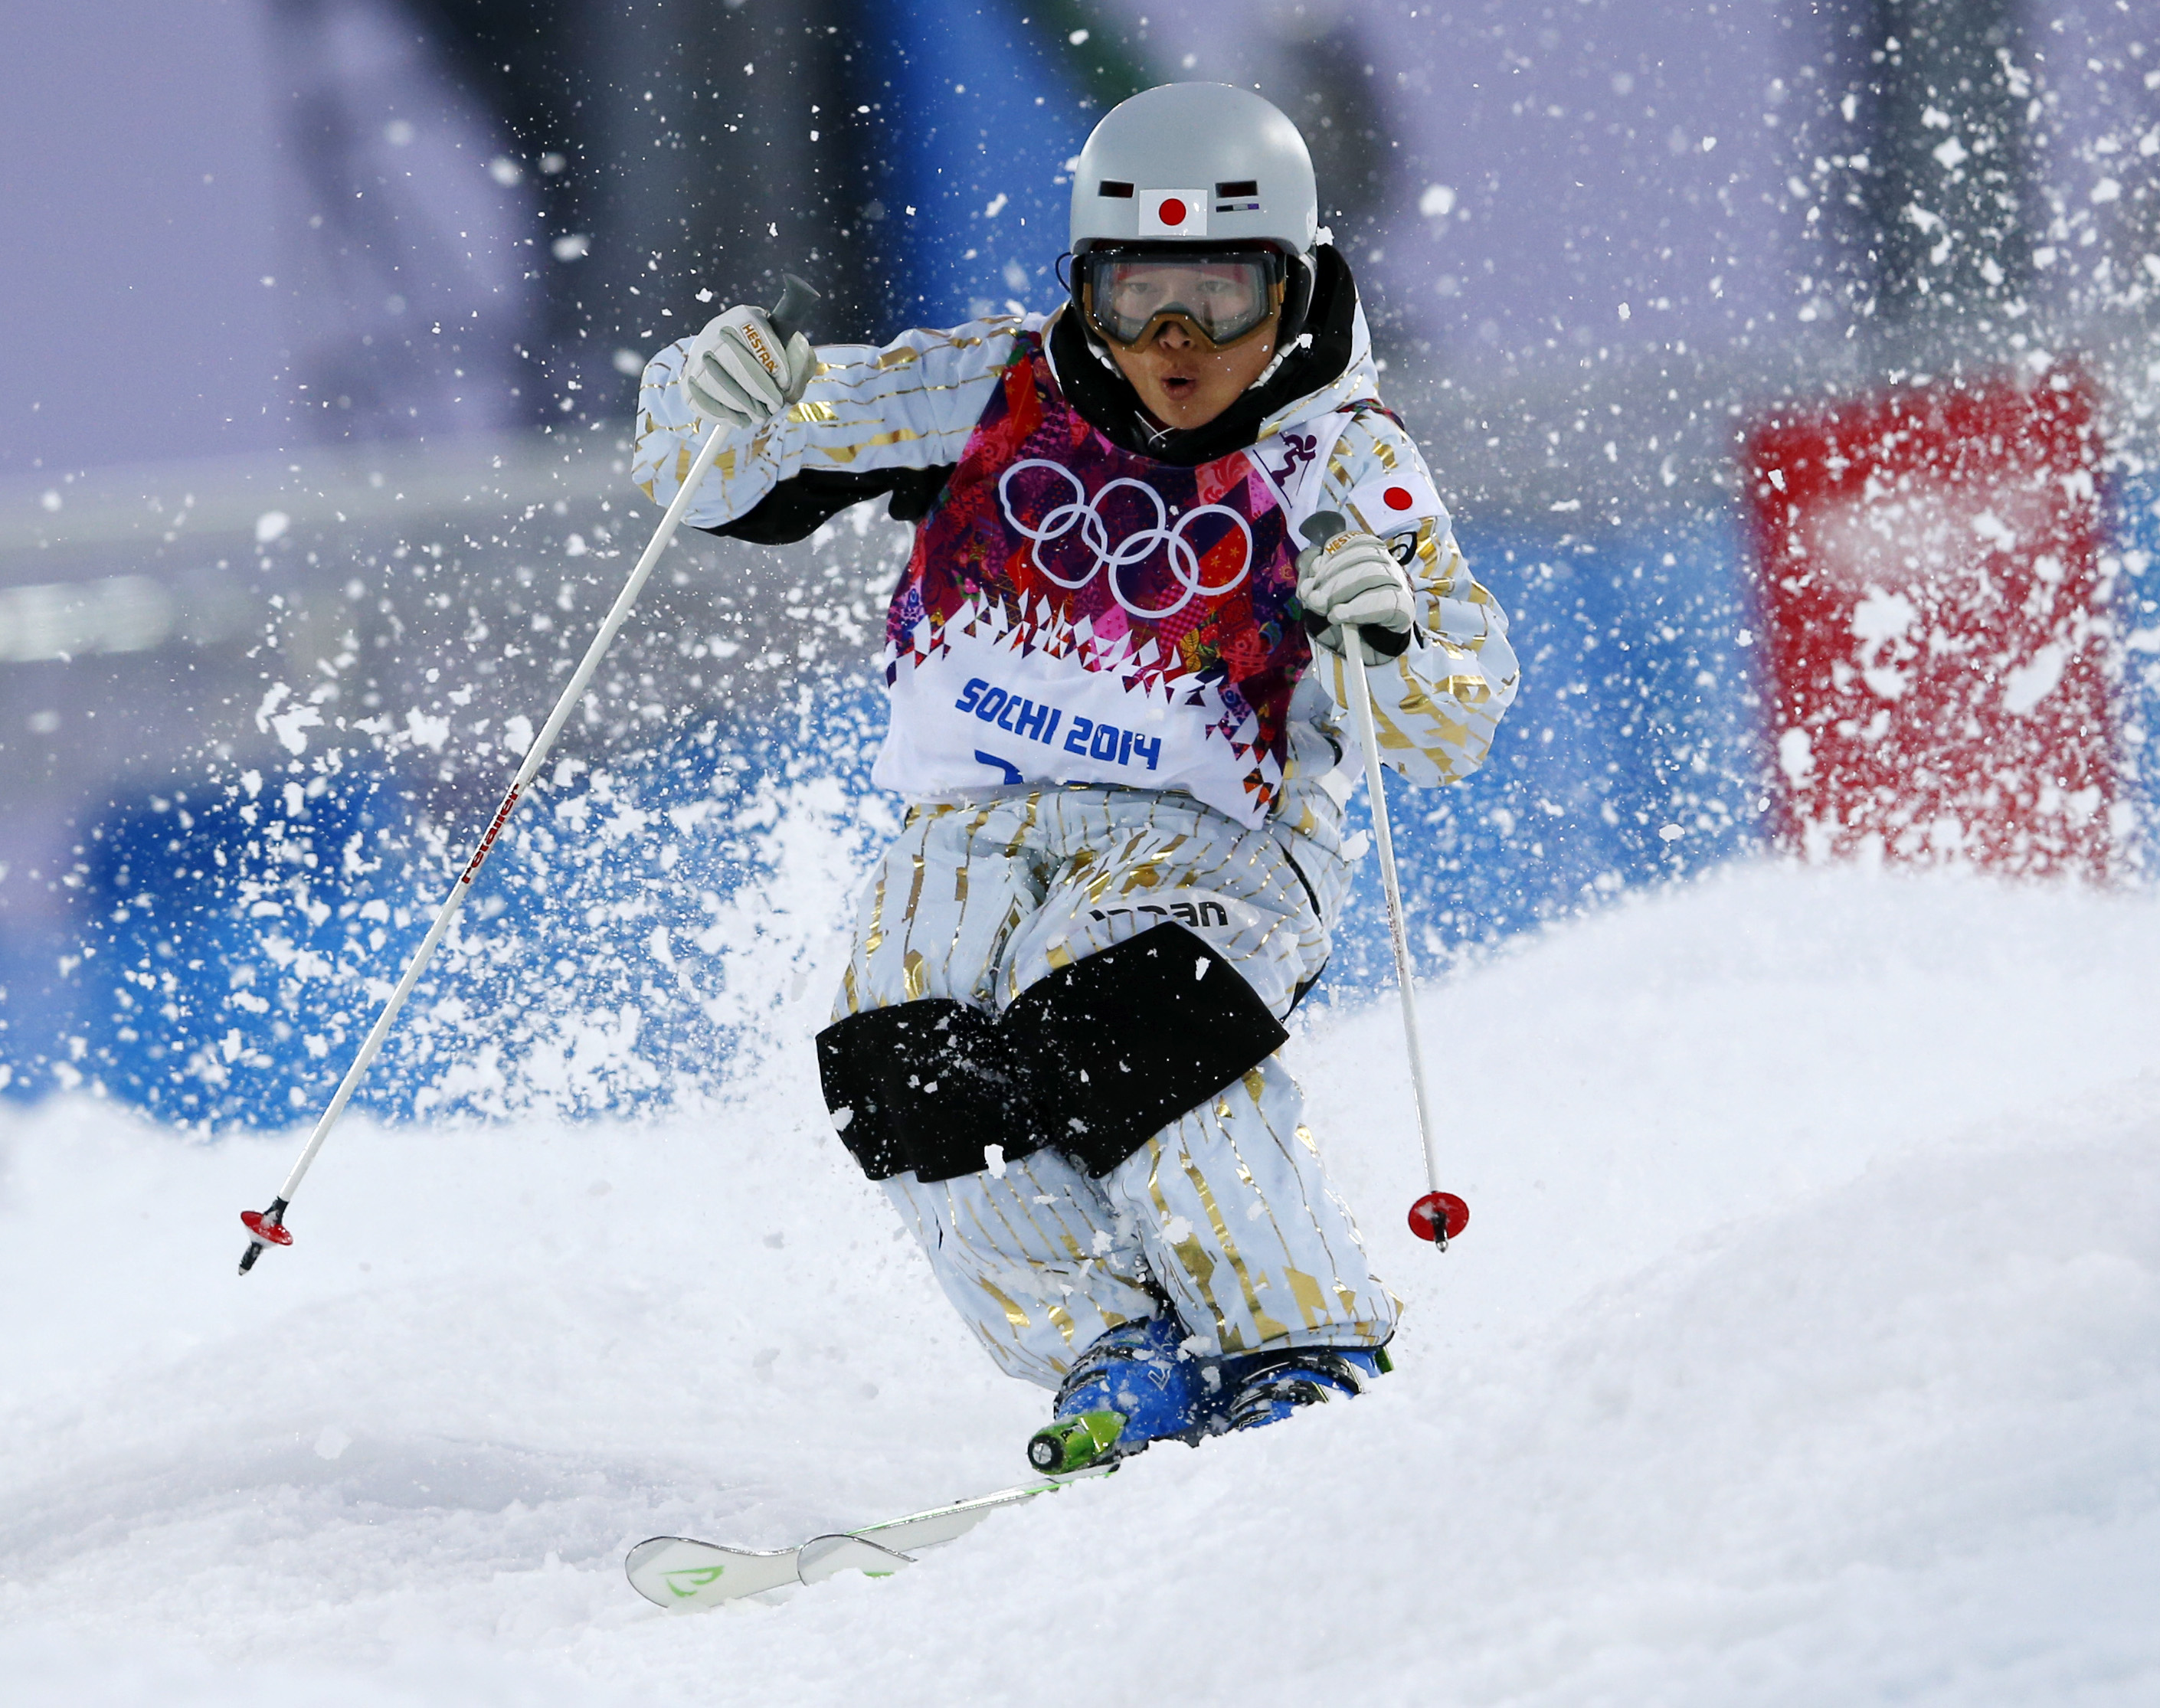 Japan's Nobuyuki Nishi runs the course during the men's moguls qualifying at the Rosa Khutor Extreme Park at the 2014 Winter Olympics, Monday, Feb. 10, 2014, in Krasnaya Polyana, Russia.  (AP Photo/Sergei Grits)